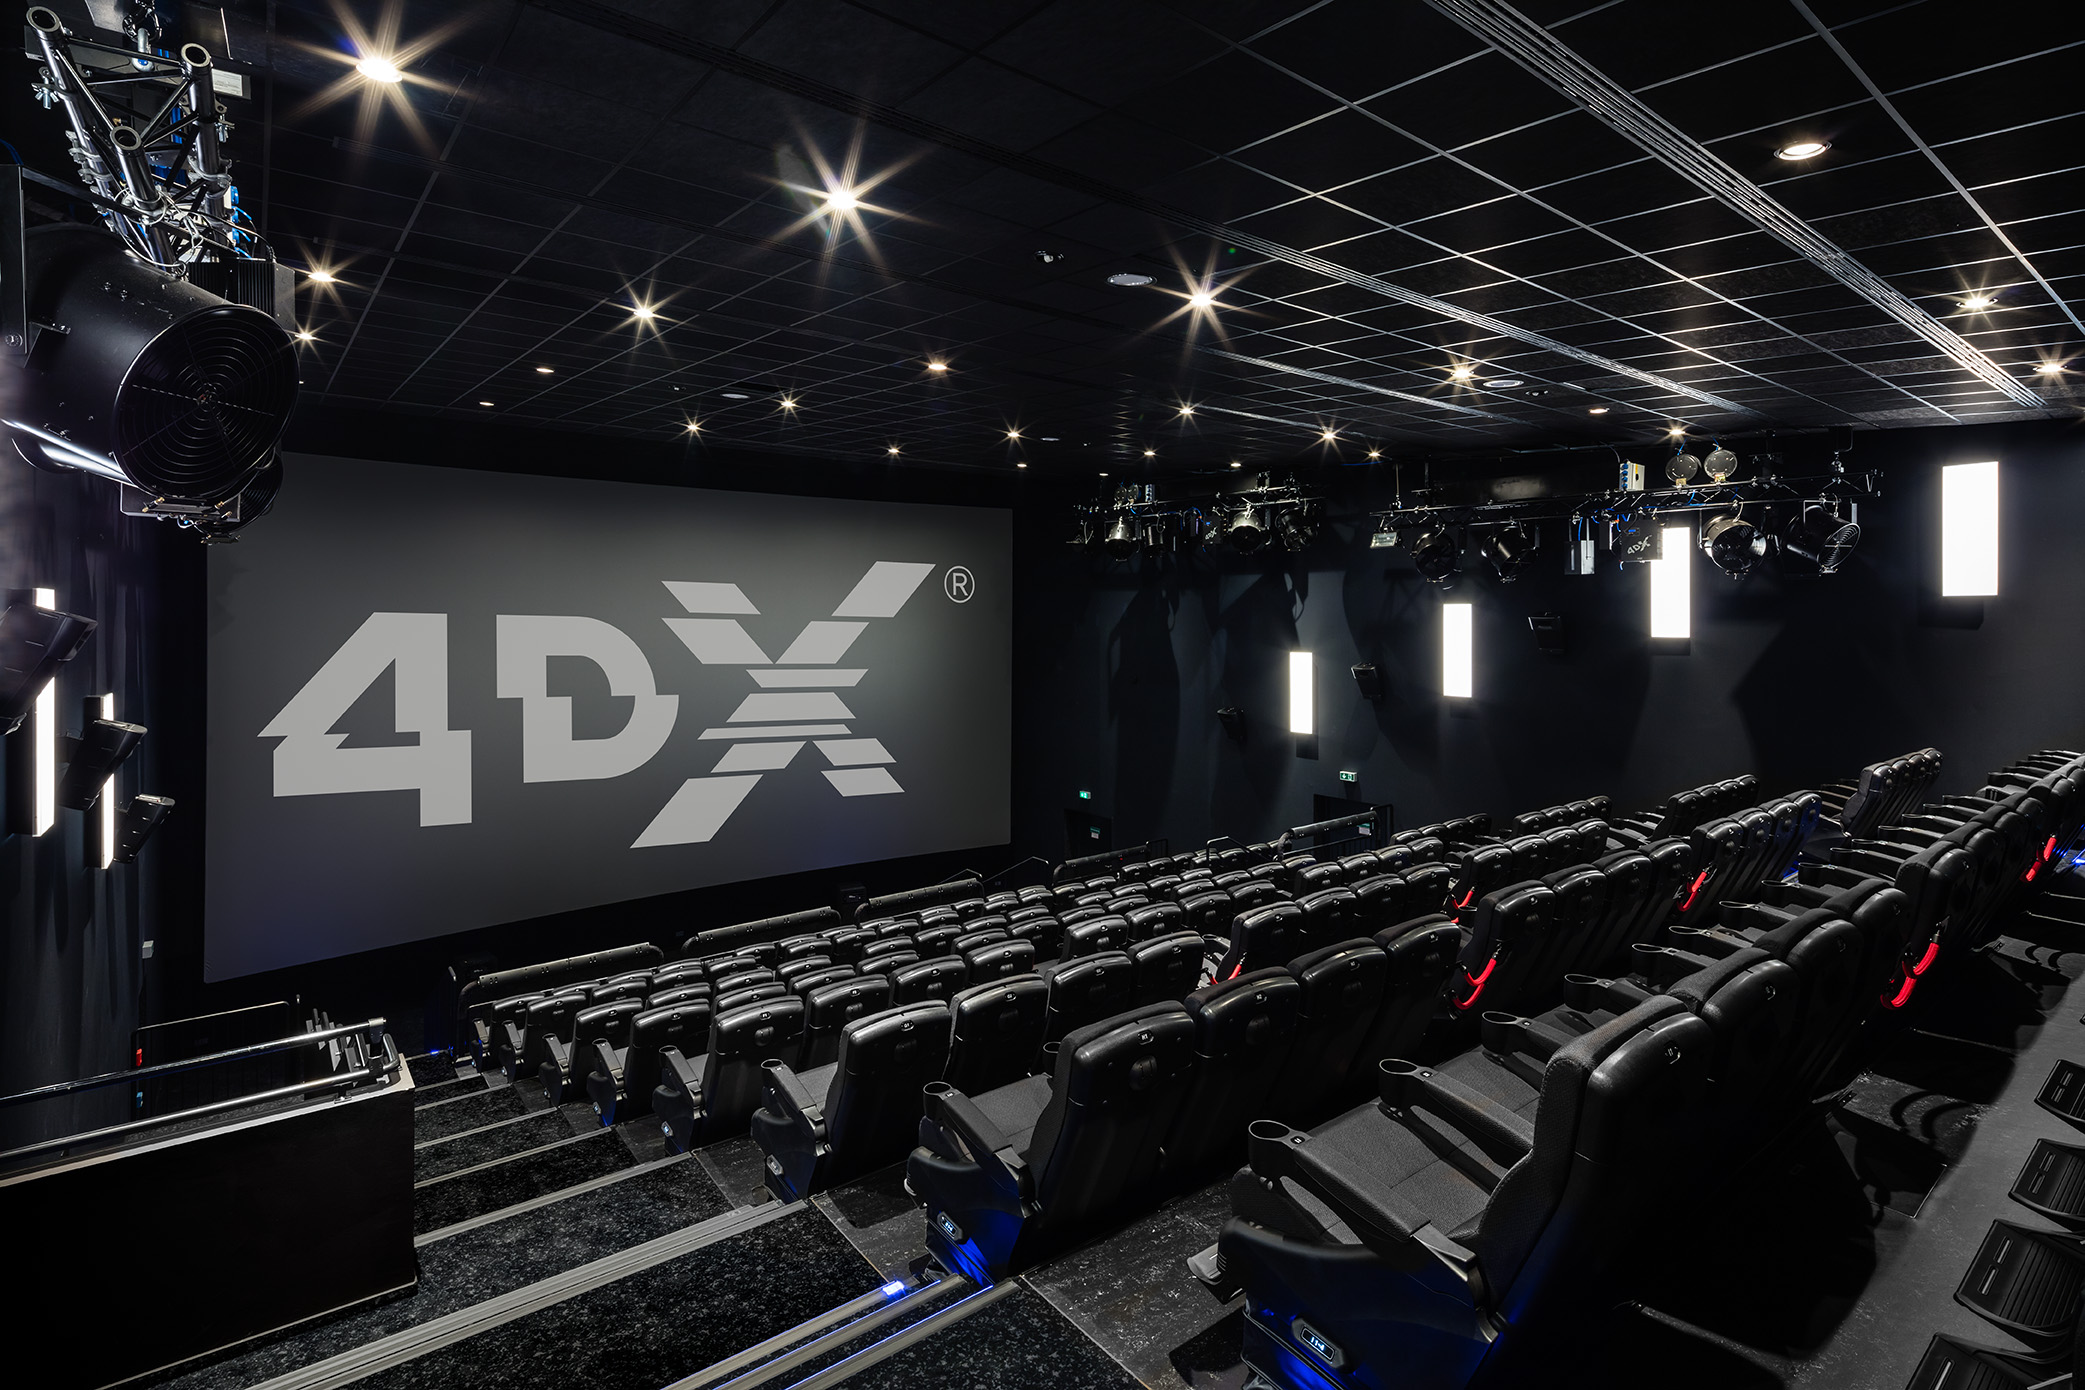 CJ 4DPLEX Expands 4DX Footprint to Austria With Debut at Hollywood Megaplex Gasometer